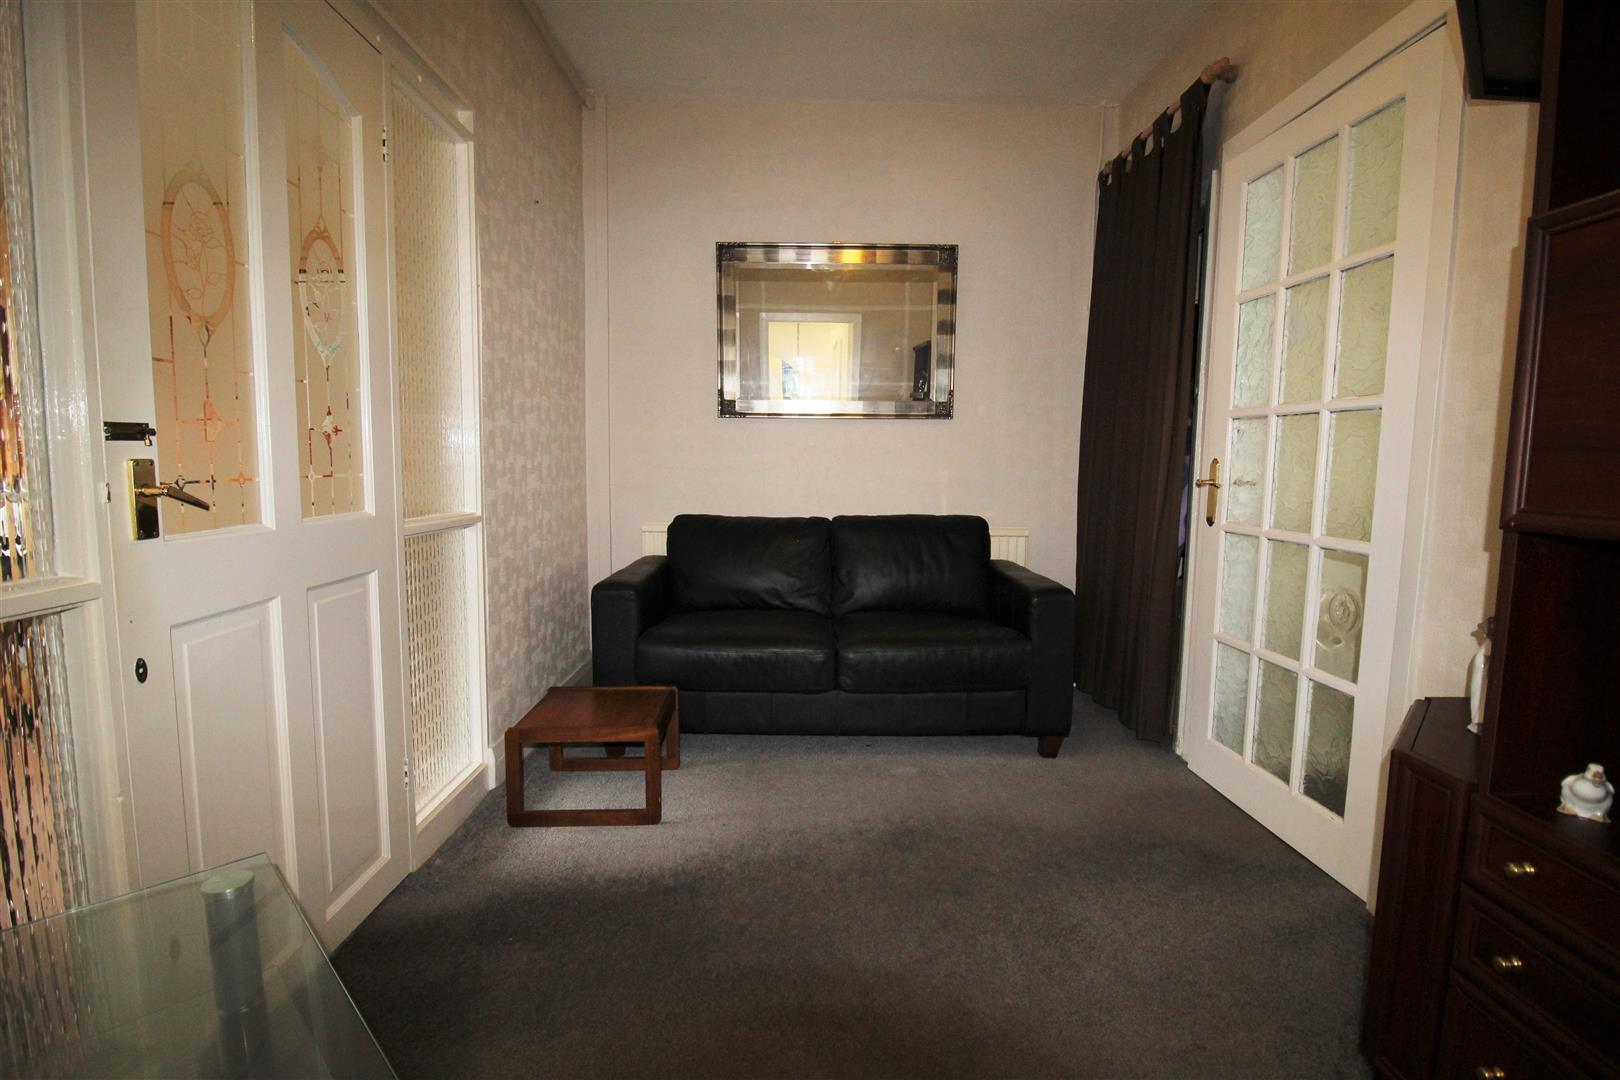 3 Bedrooms, House - Mid Terrace, Greystone Road, Fazakerley, Liverpool